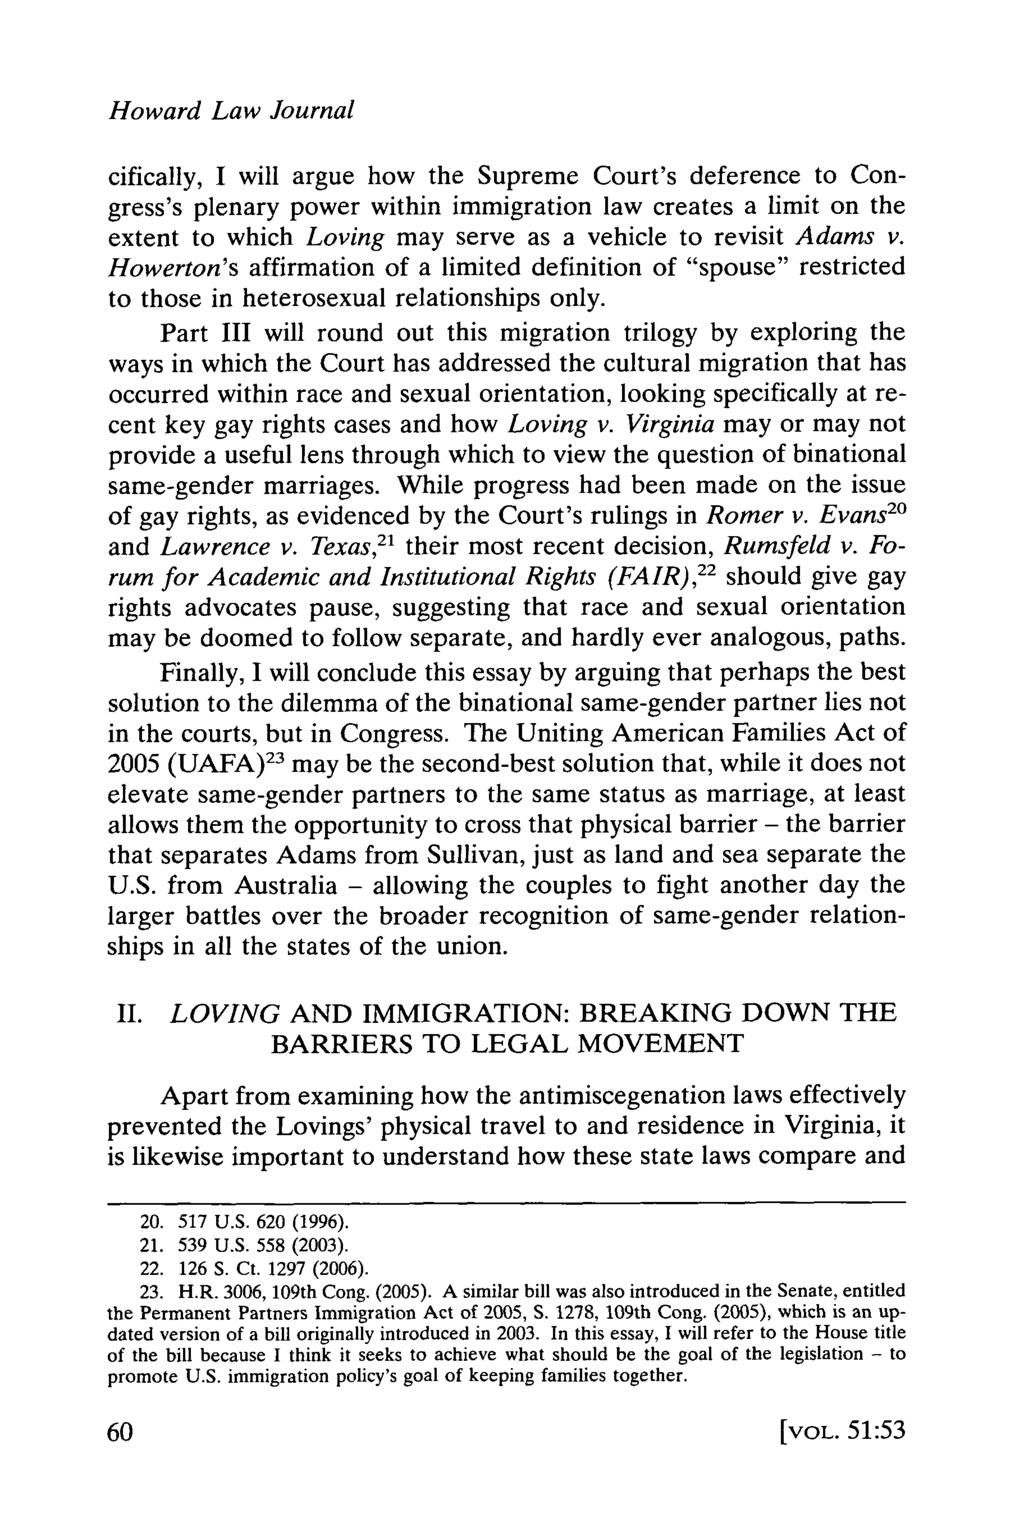 Howard Law Journal cifically, I will argue how the Supreme Court's deference to Congress's plenary power within immigration law creates a limit on the extent to which Loving may serve as a vehicle to